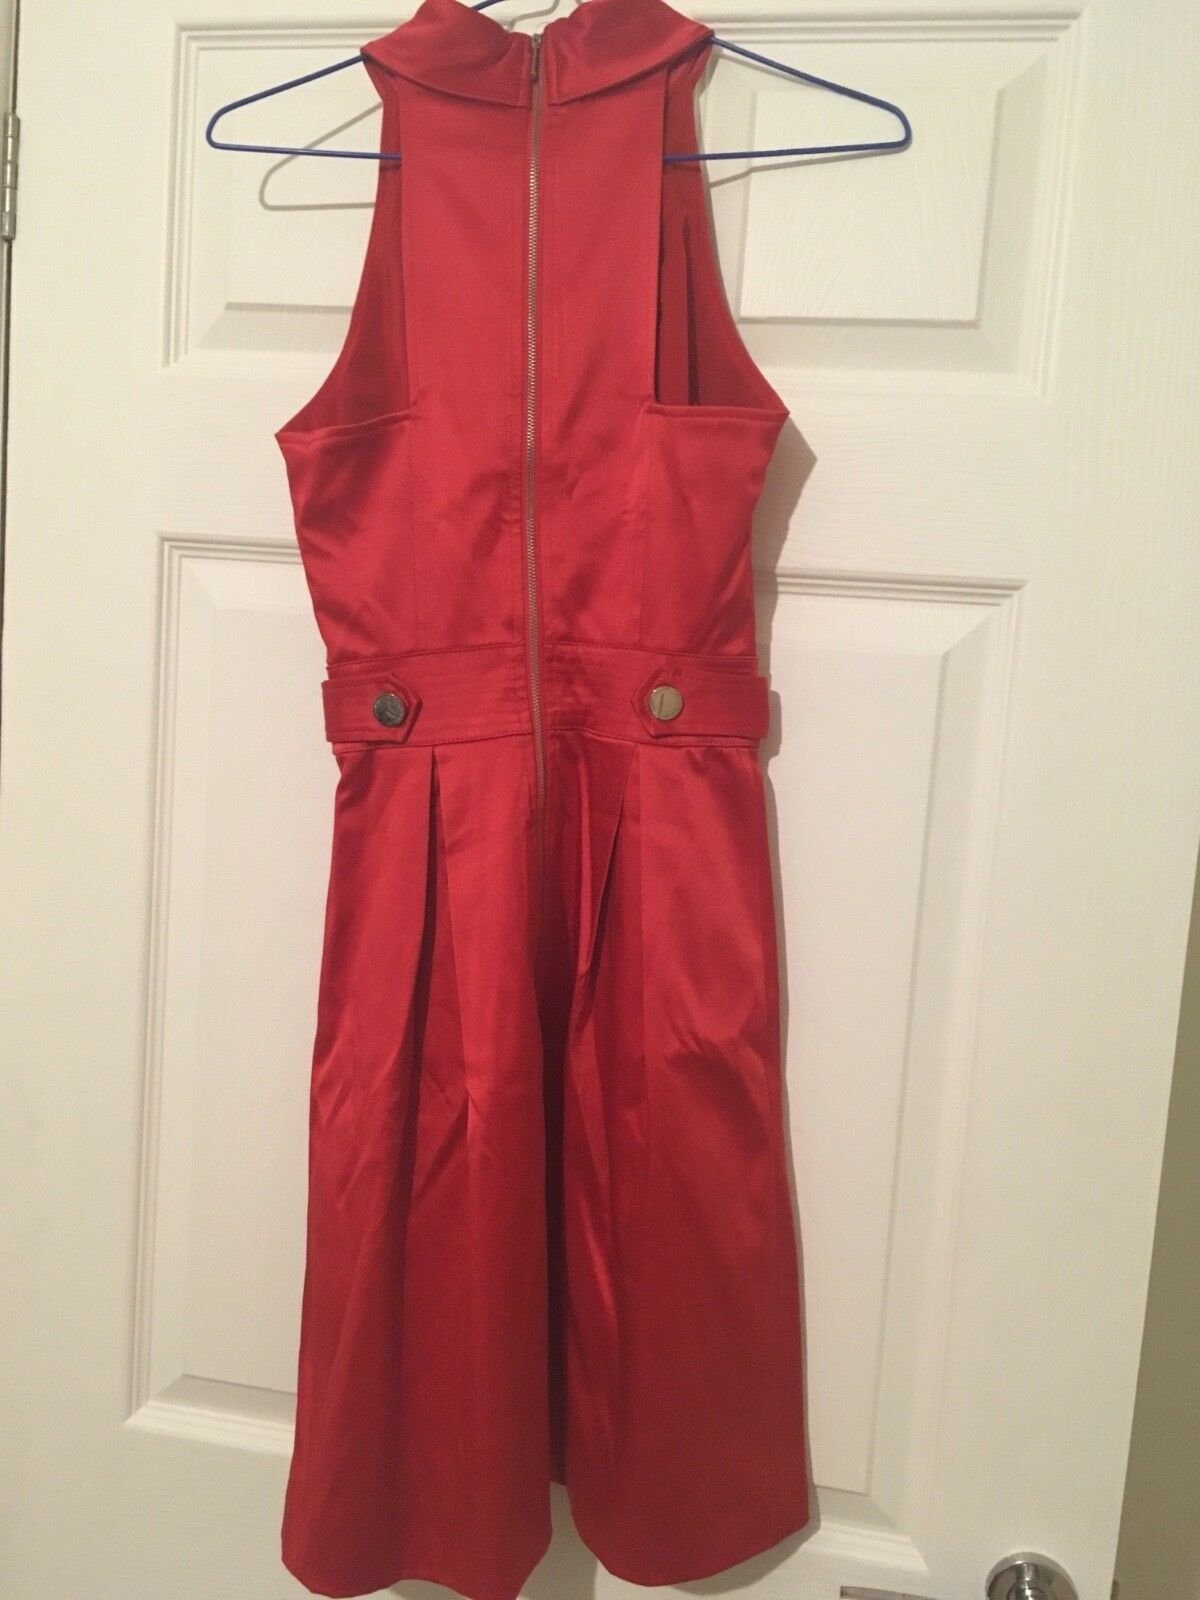 KAREN MILLEN rot satin dress Größe 1 1 1 (8) 87b498